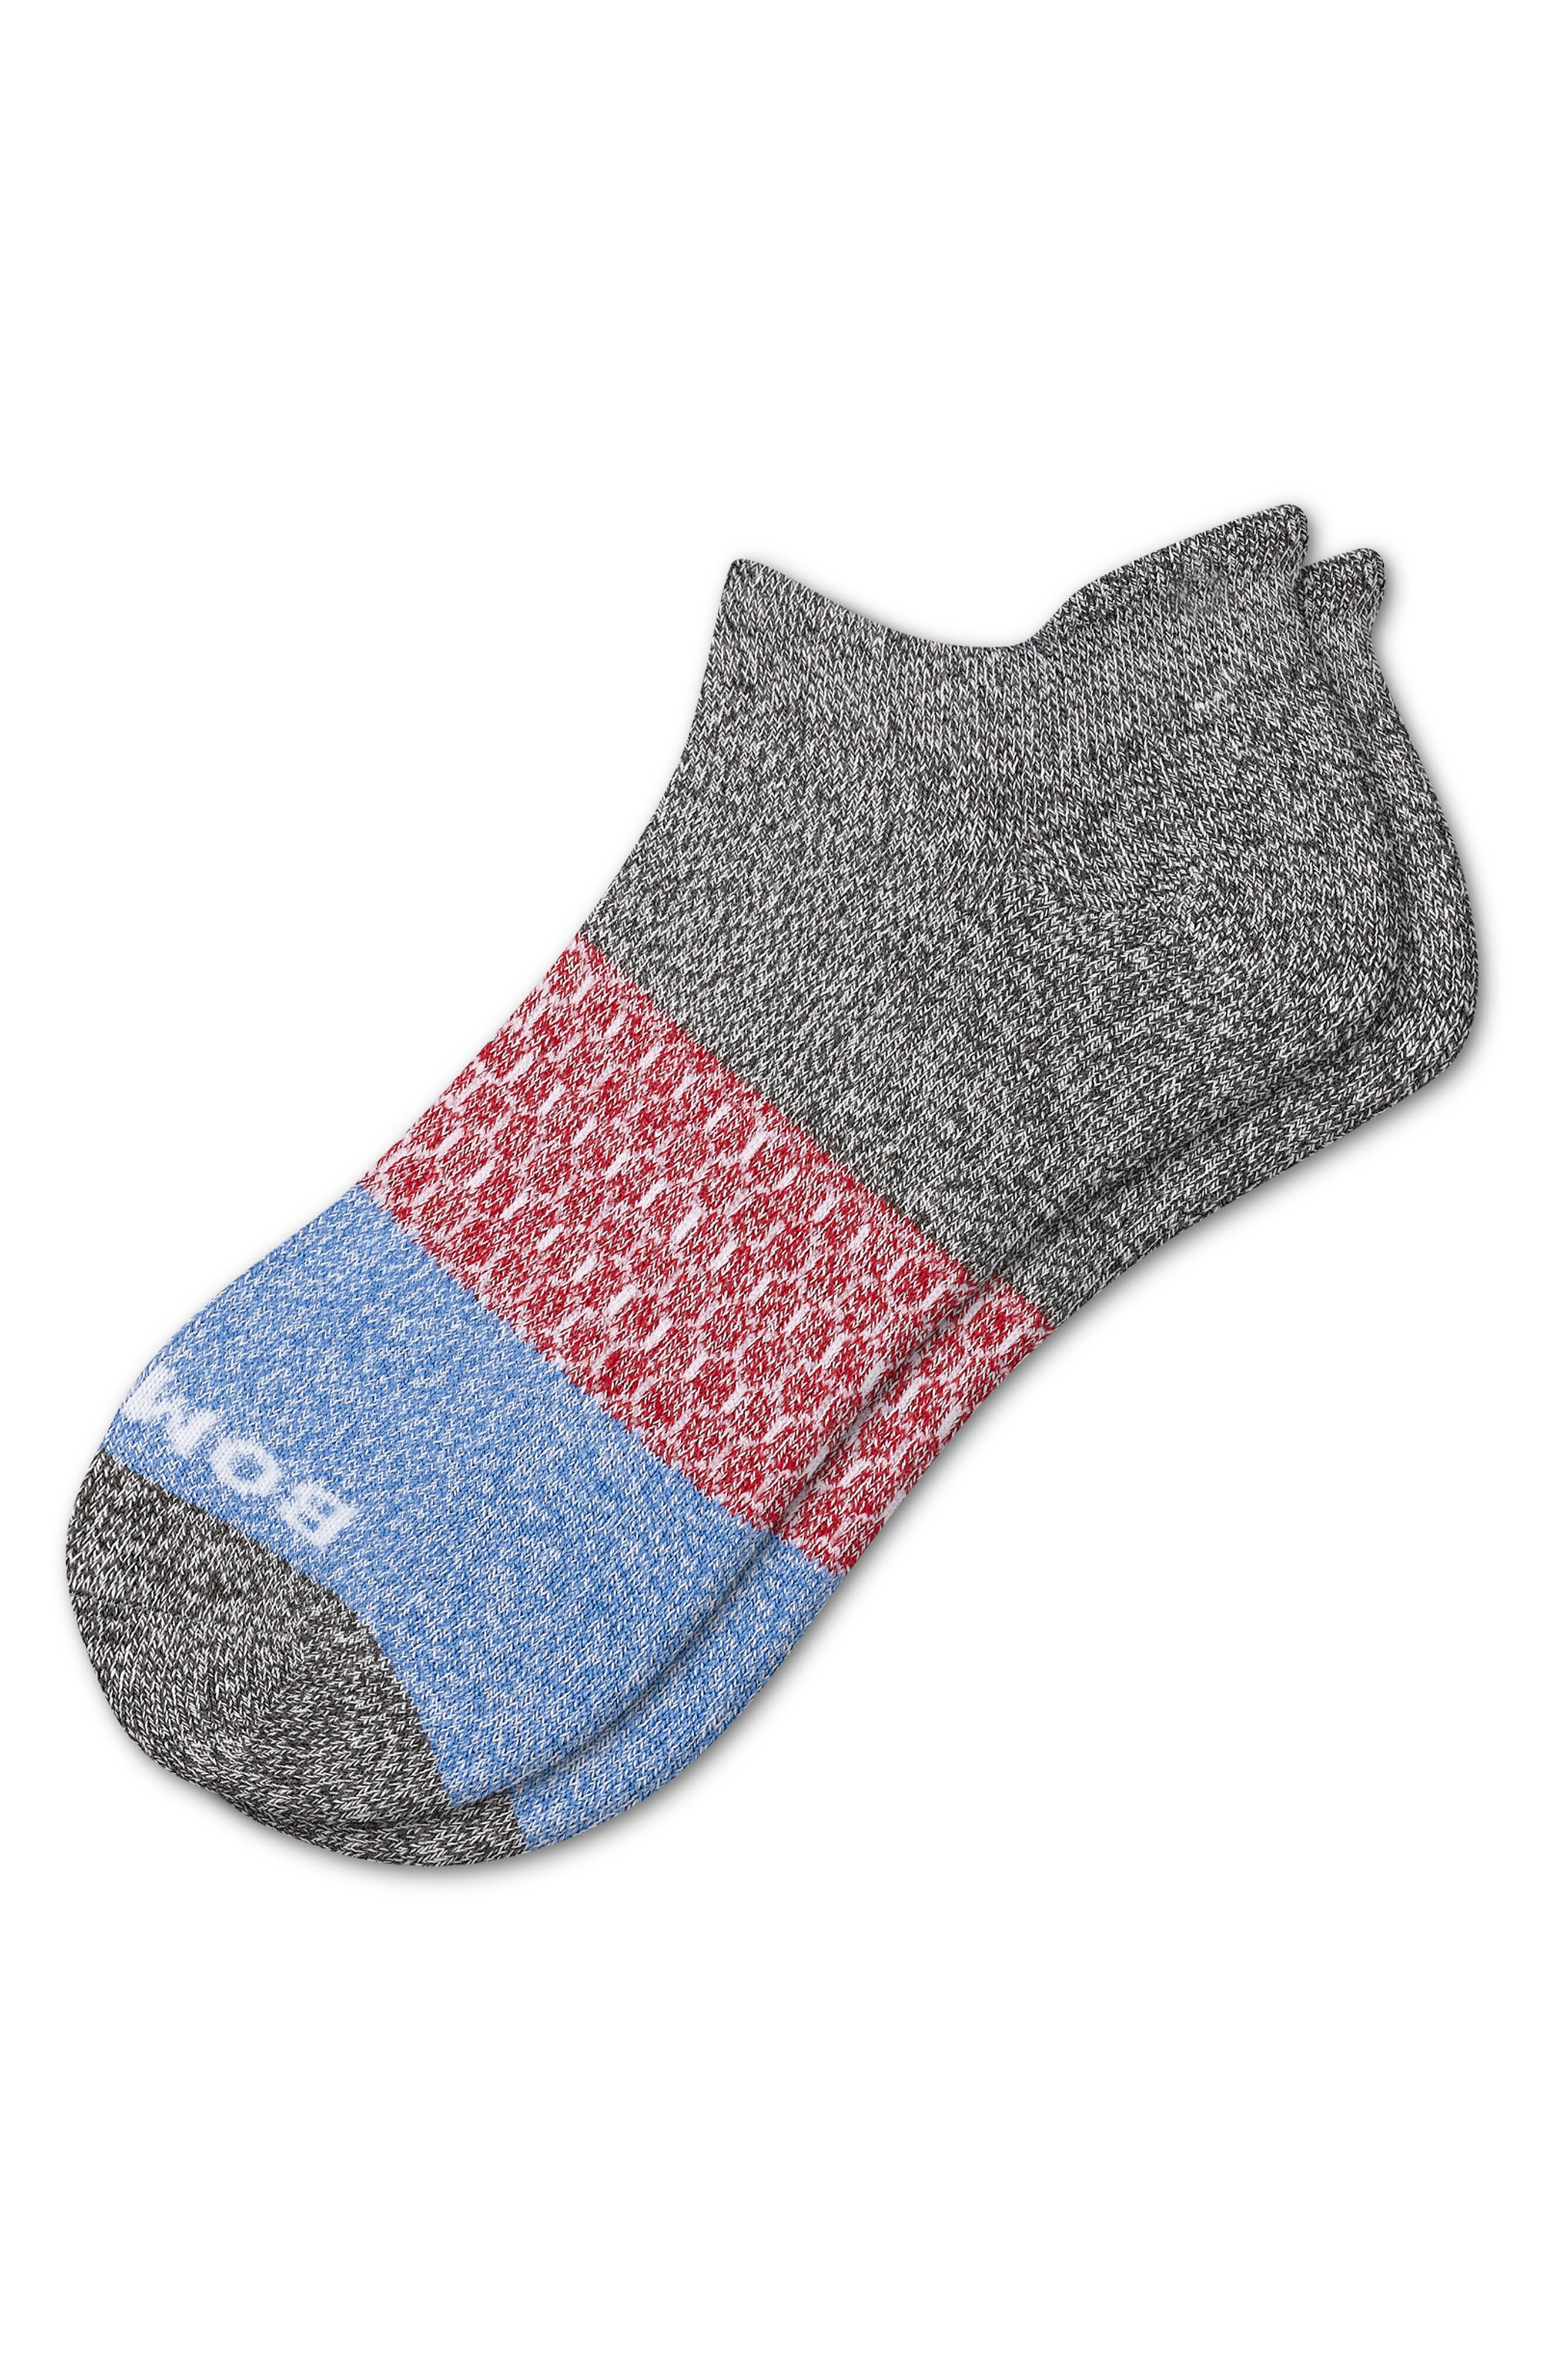 BOMBAS Colorblock Ankle Socks, Main, color, GREY CHILI PEPPER